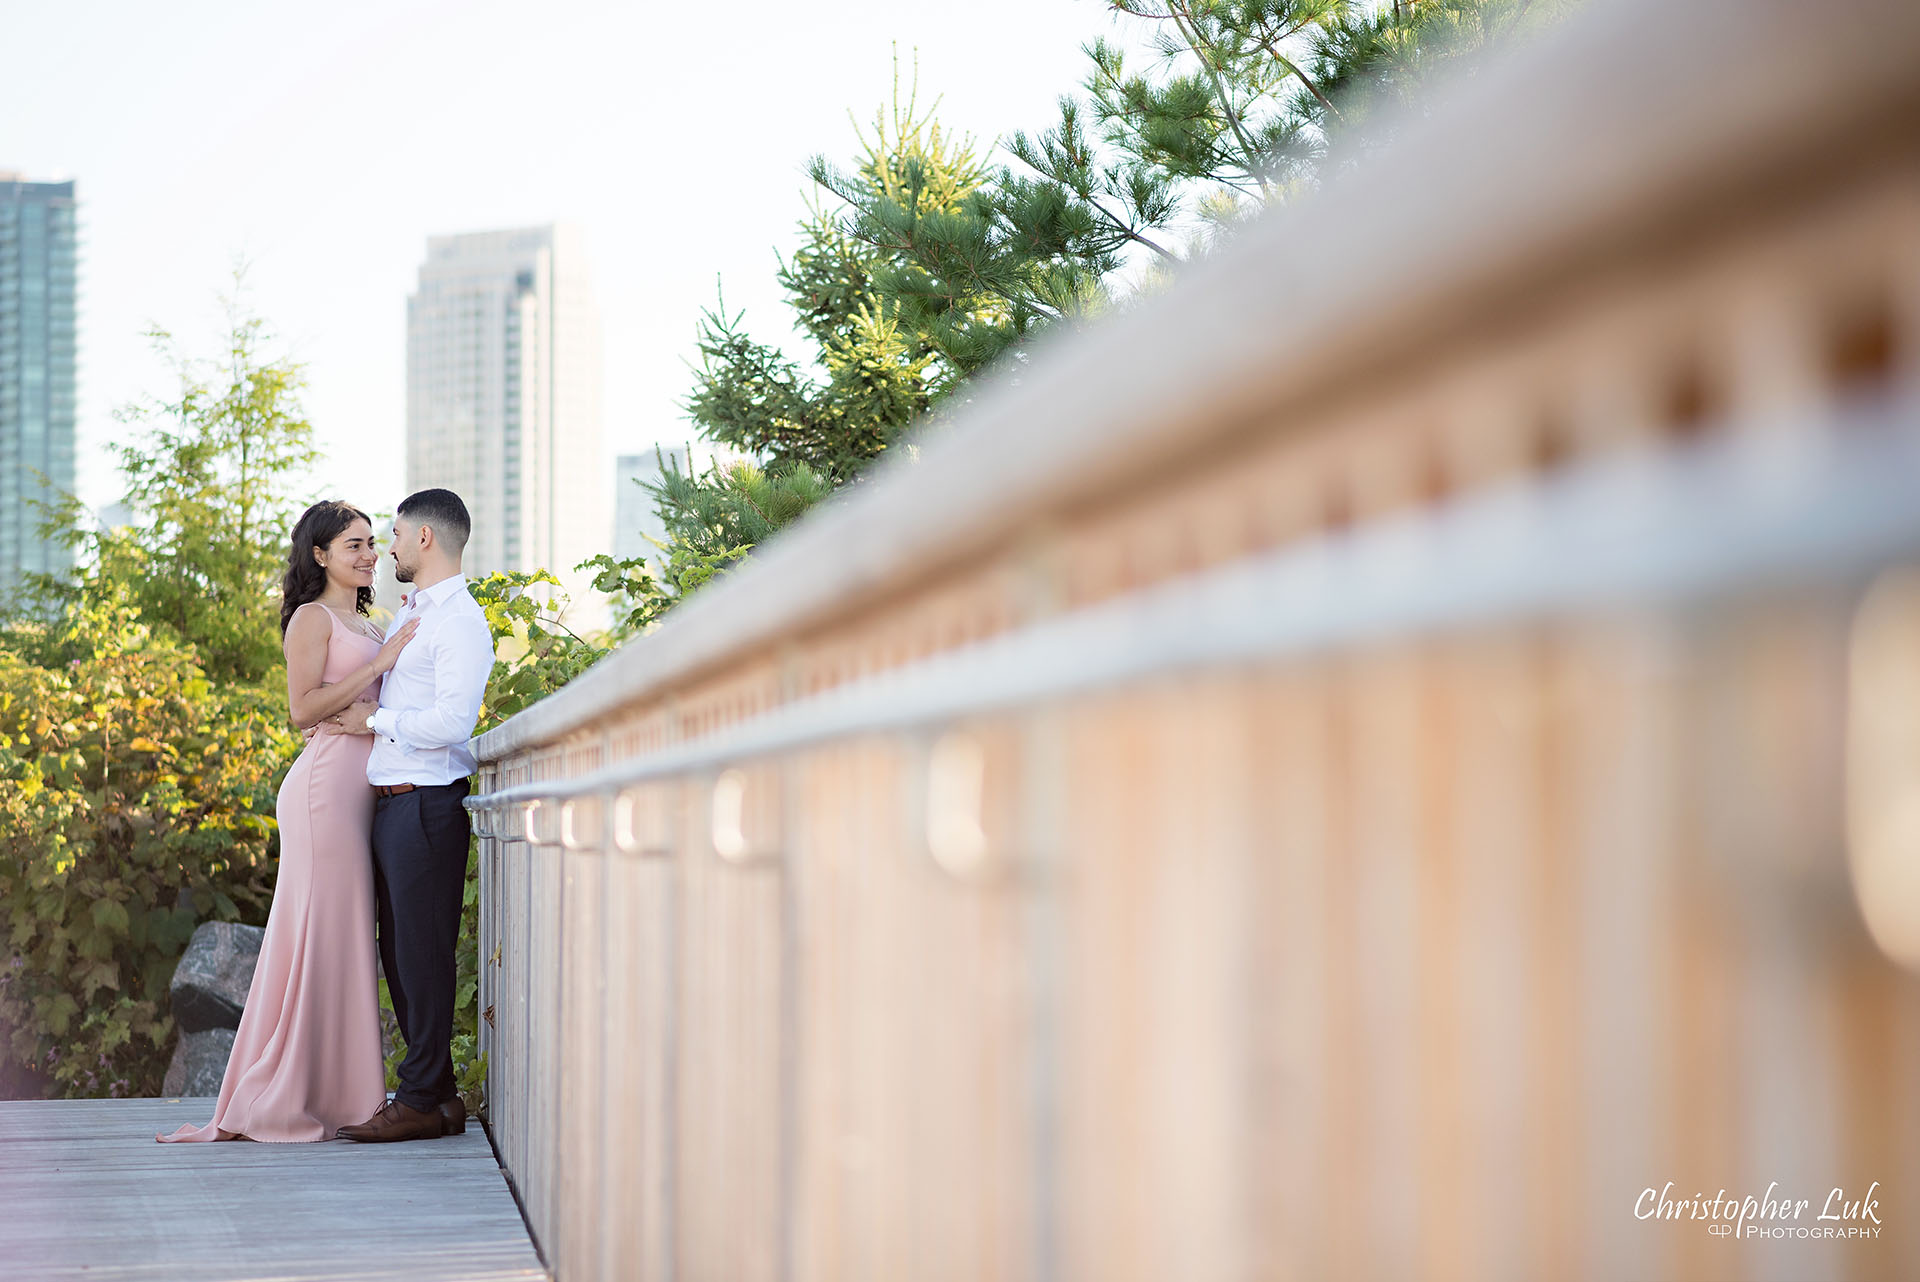 Christopher Luk Trillium Park Ontario Place Waterfront Engagement Session Toronto Wedding Photographer Bride Groom Natural Candid Photojournalistic Standing Together Hug Intimate Ravine Bridge